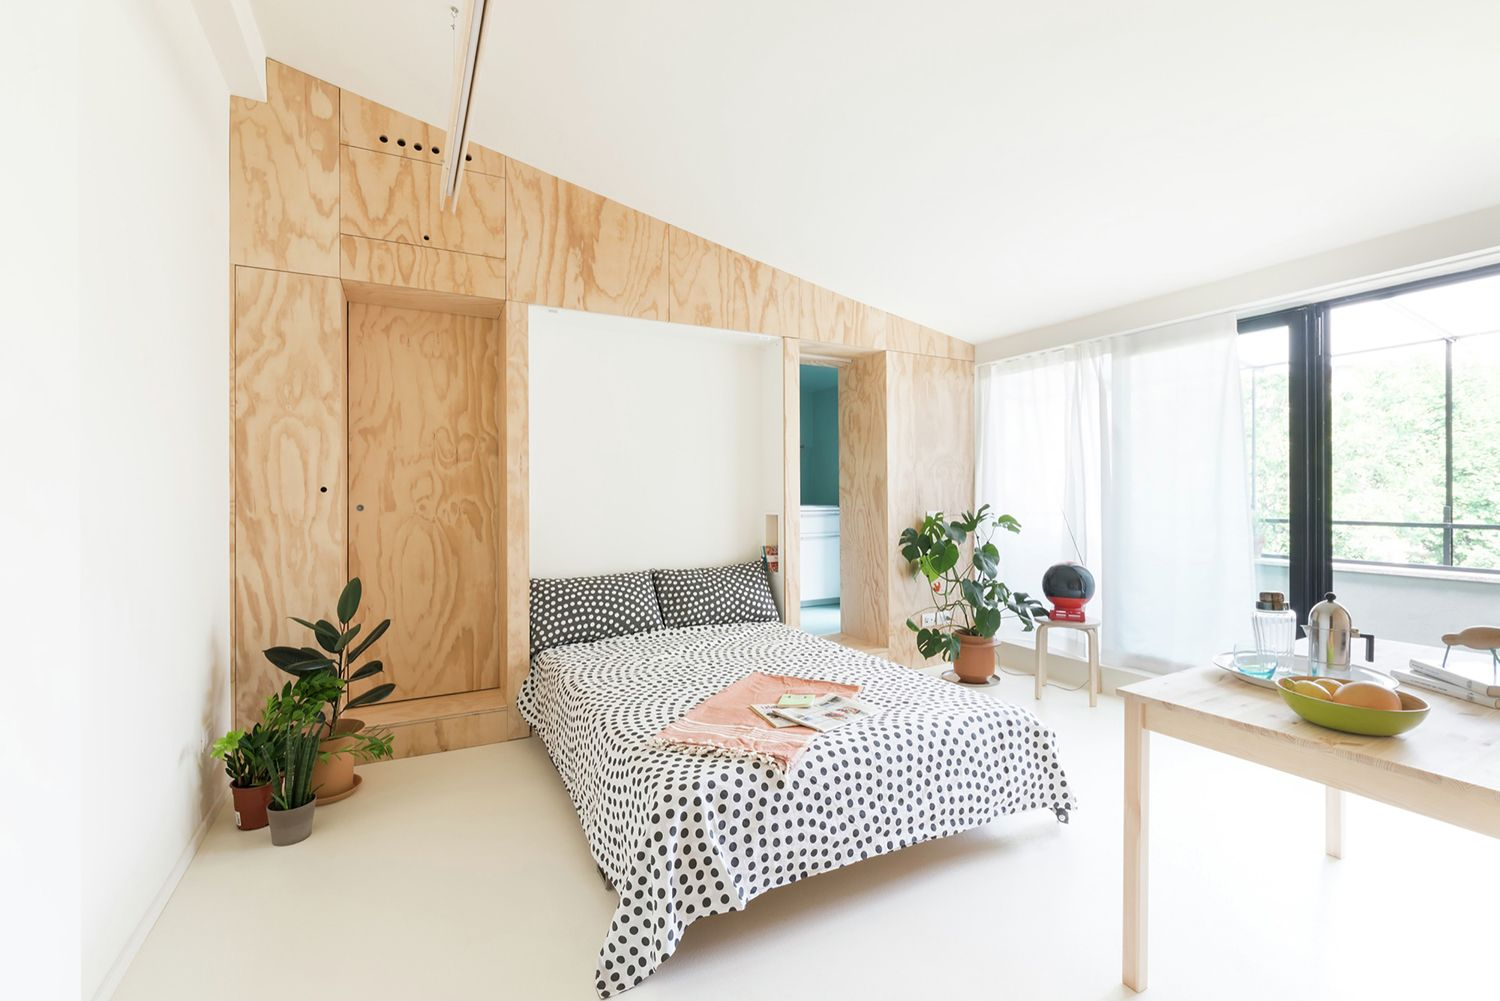 300 Square Foot Tiny Studio Apartment With Flexible Living